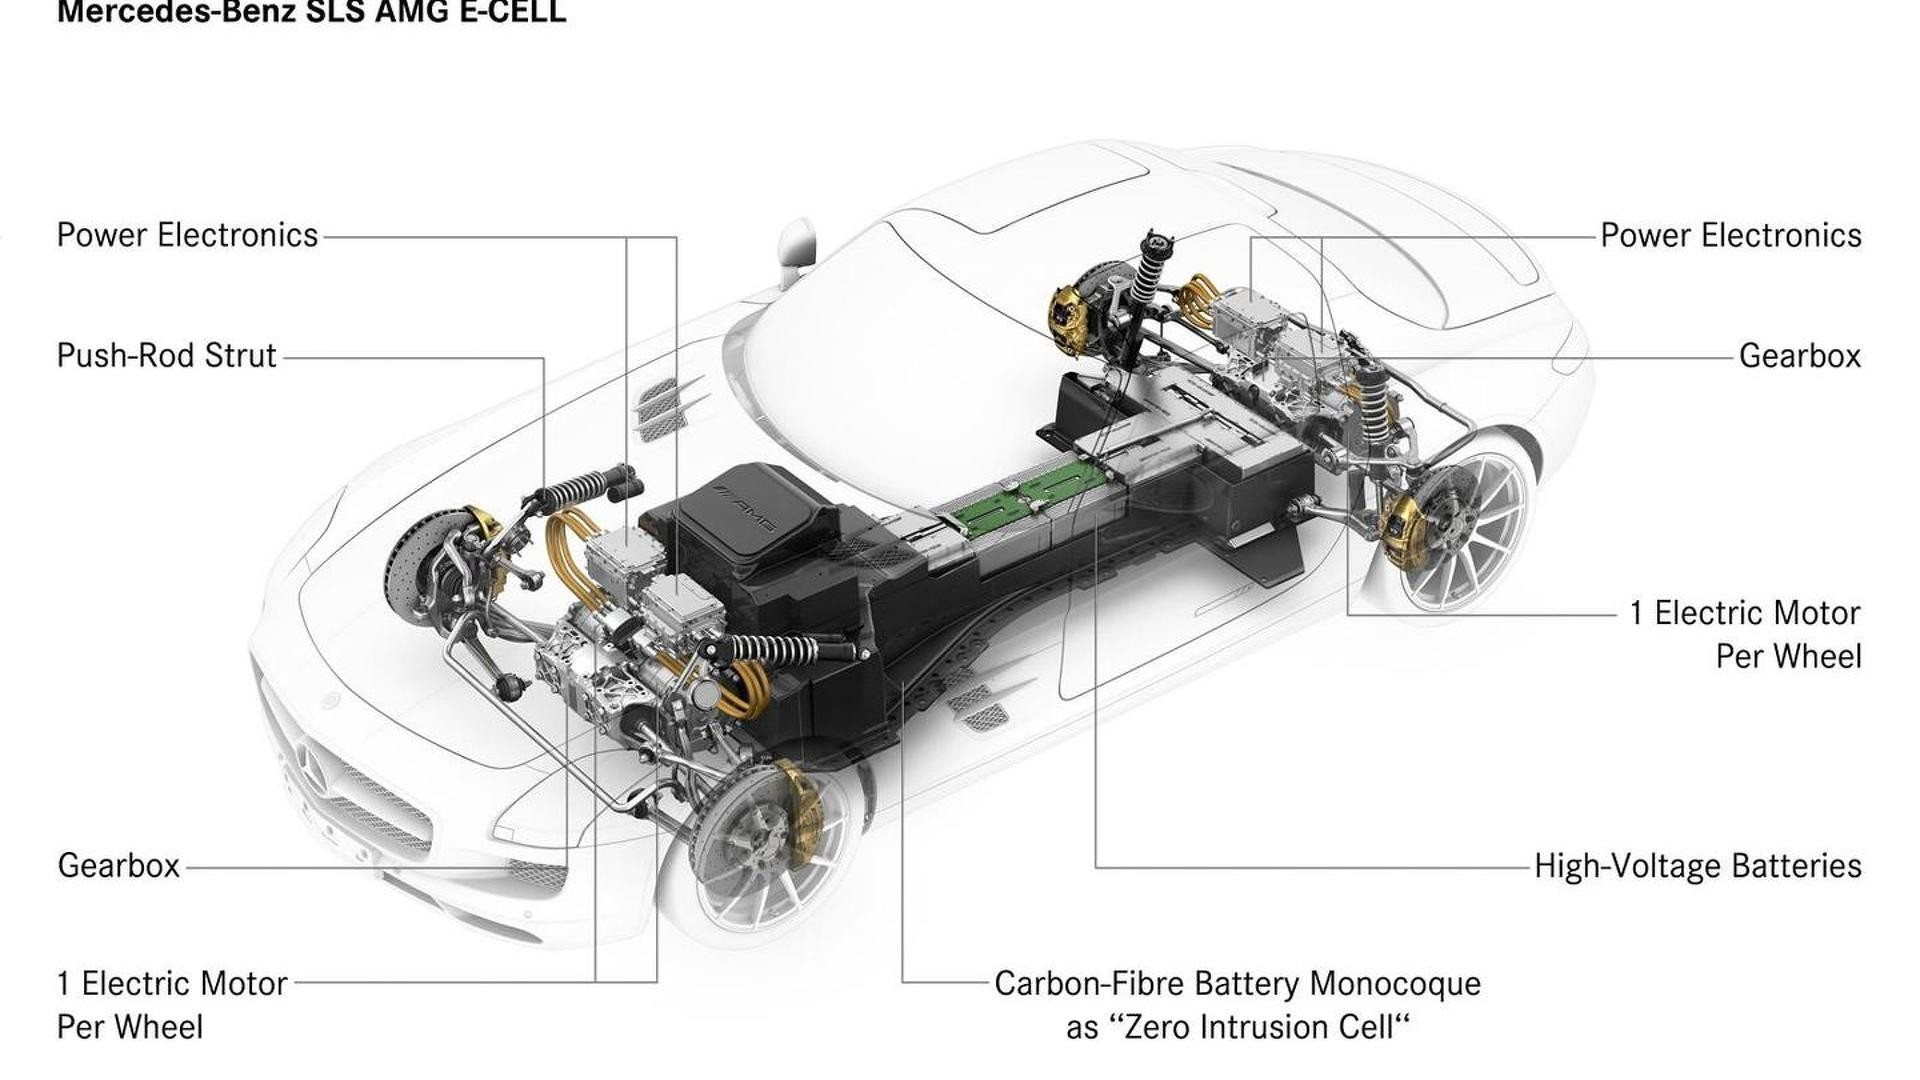 car drivetrain diagram sls amg e cell electric drivetrain